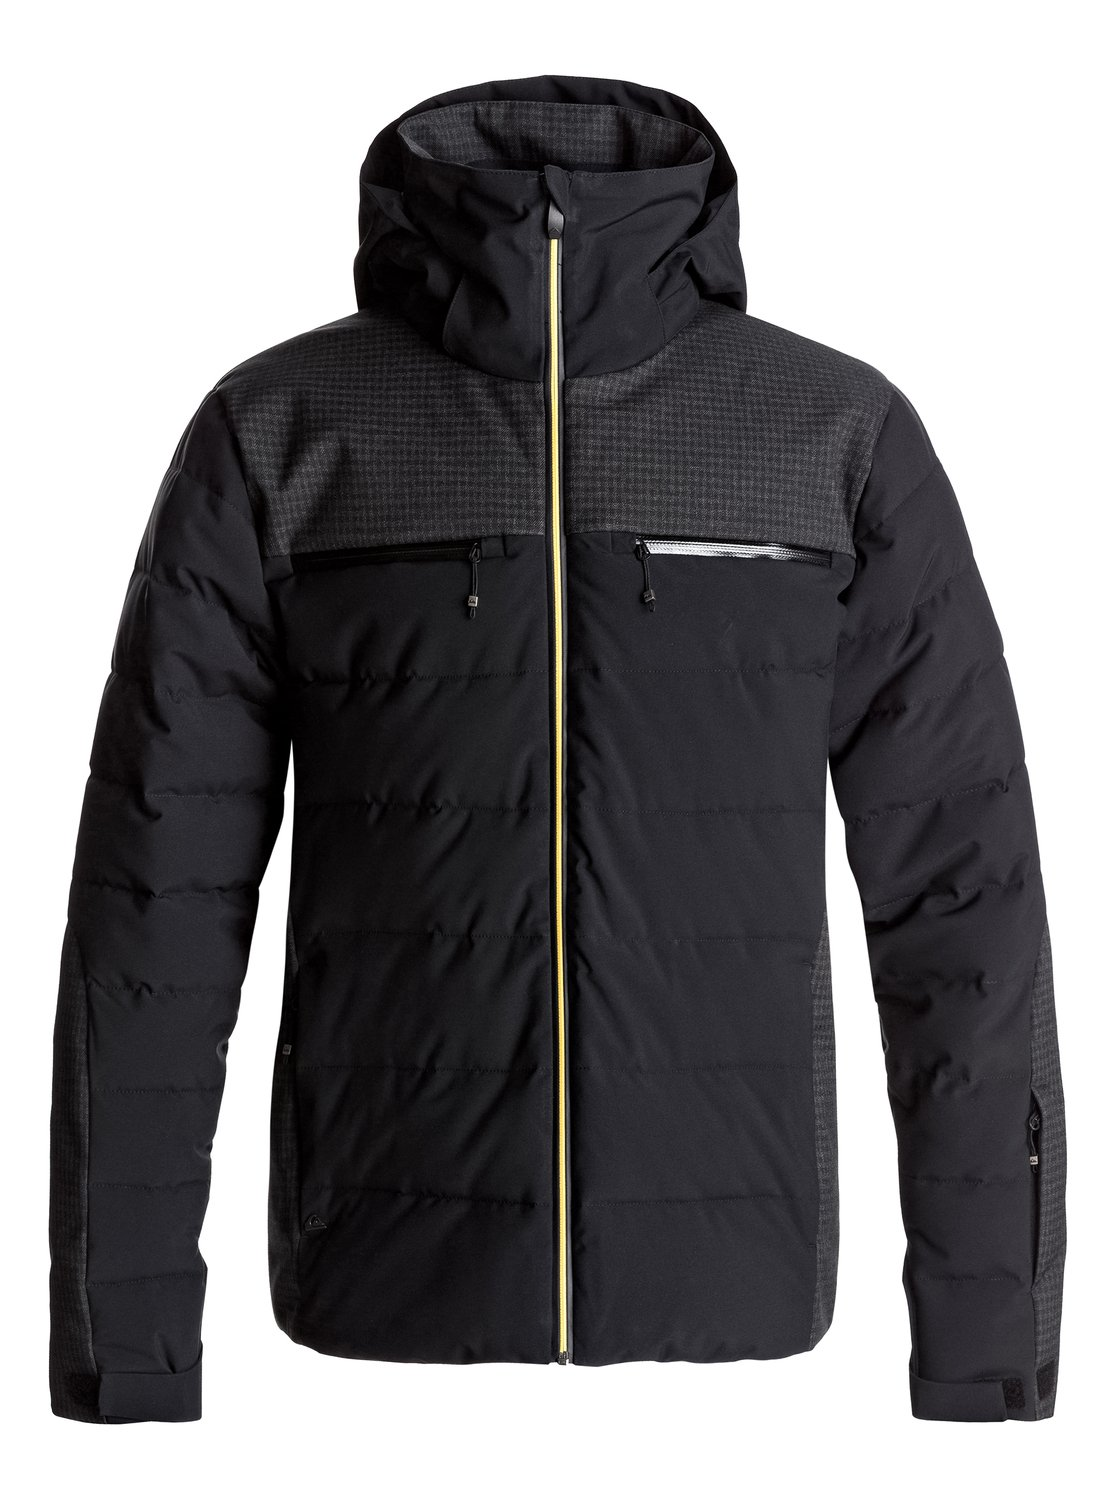 Edge The The Jacket Black Quiksilver Edge Jacket pxx8Bdrwq